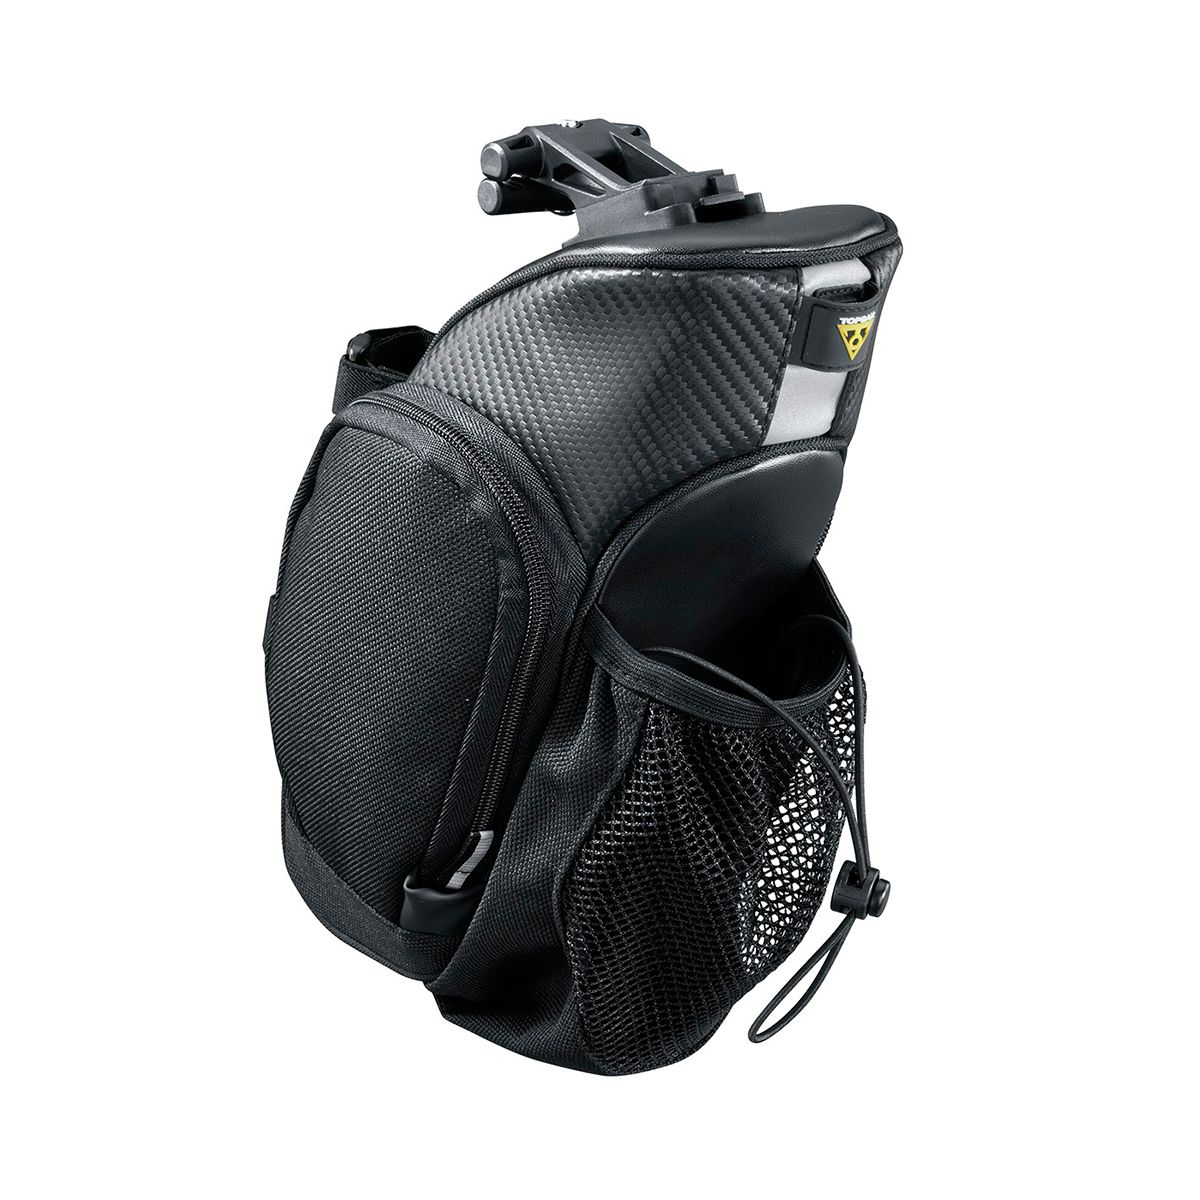 MondoPack Hydro saddle bag